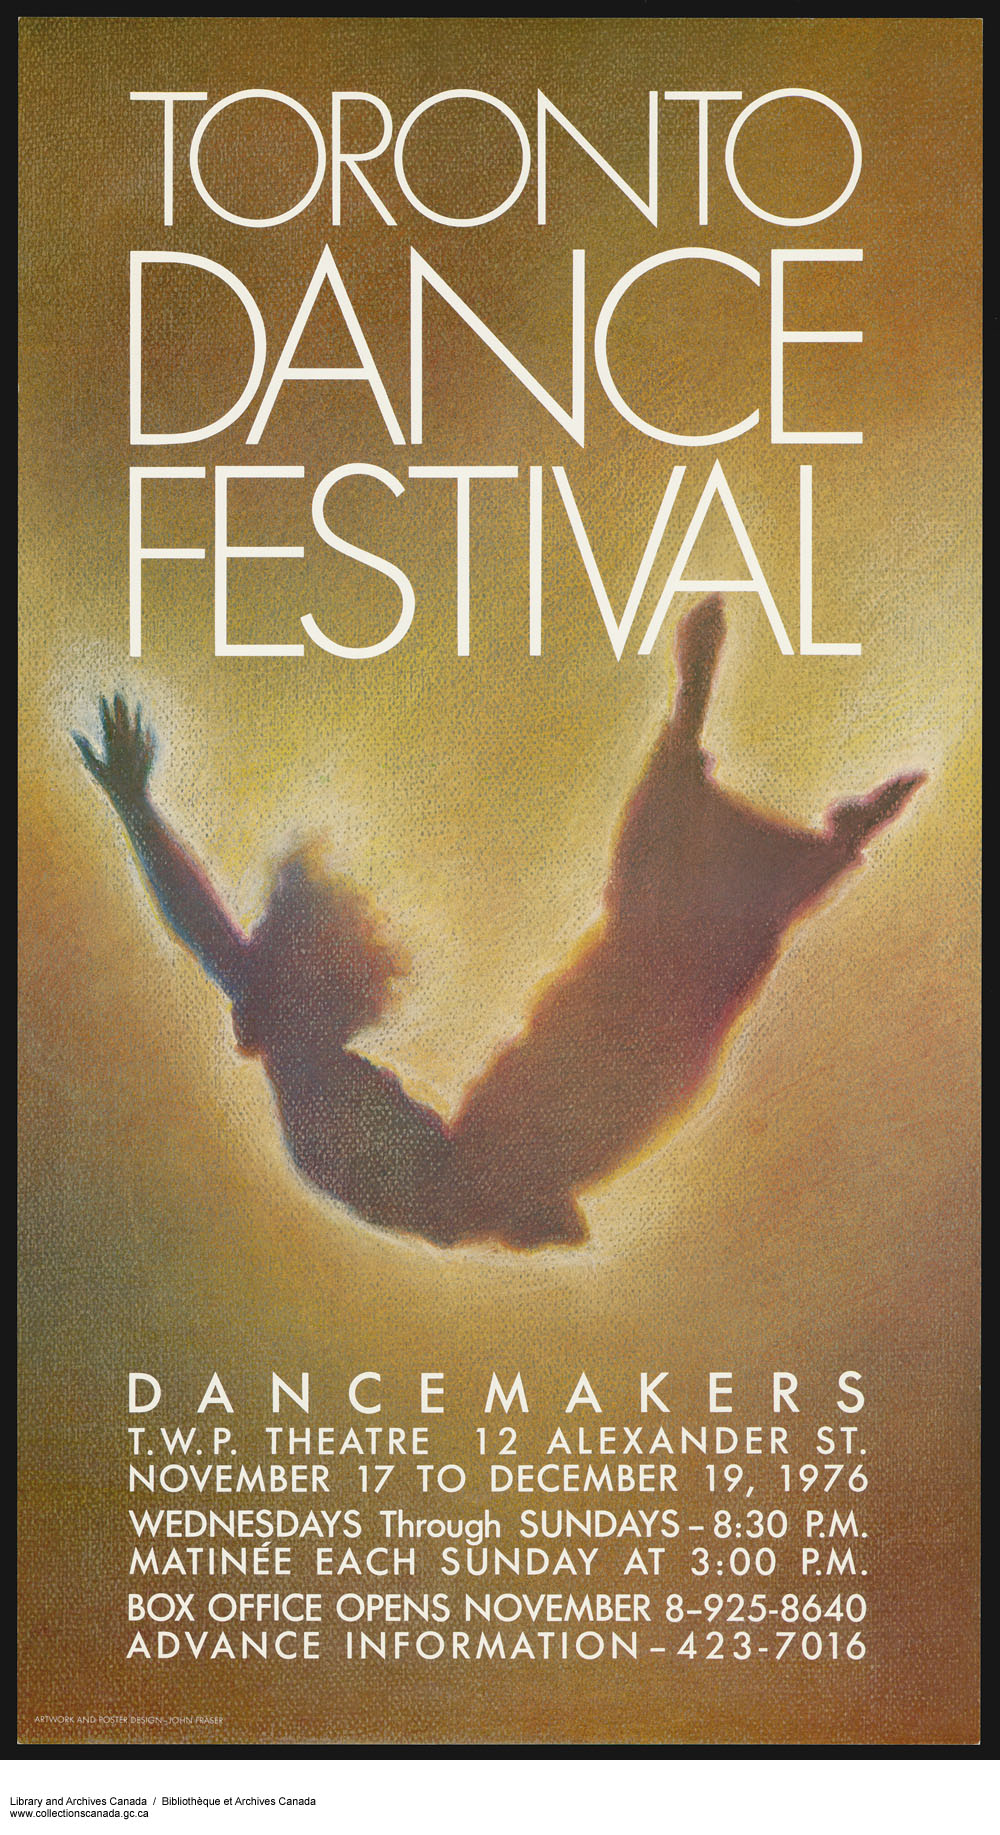 Toronto Dance Festival / Dance Makers. (item 1)